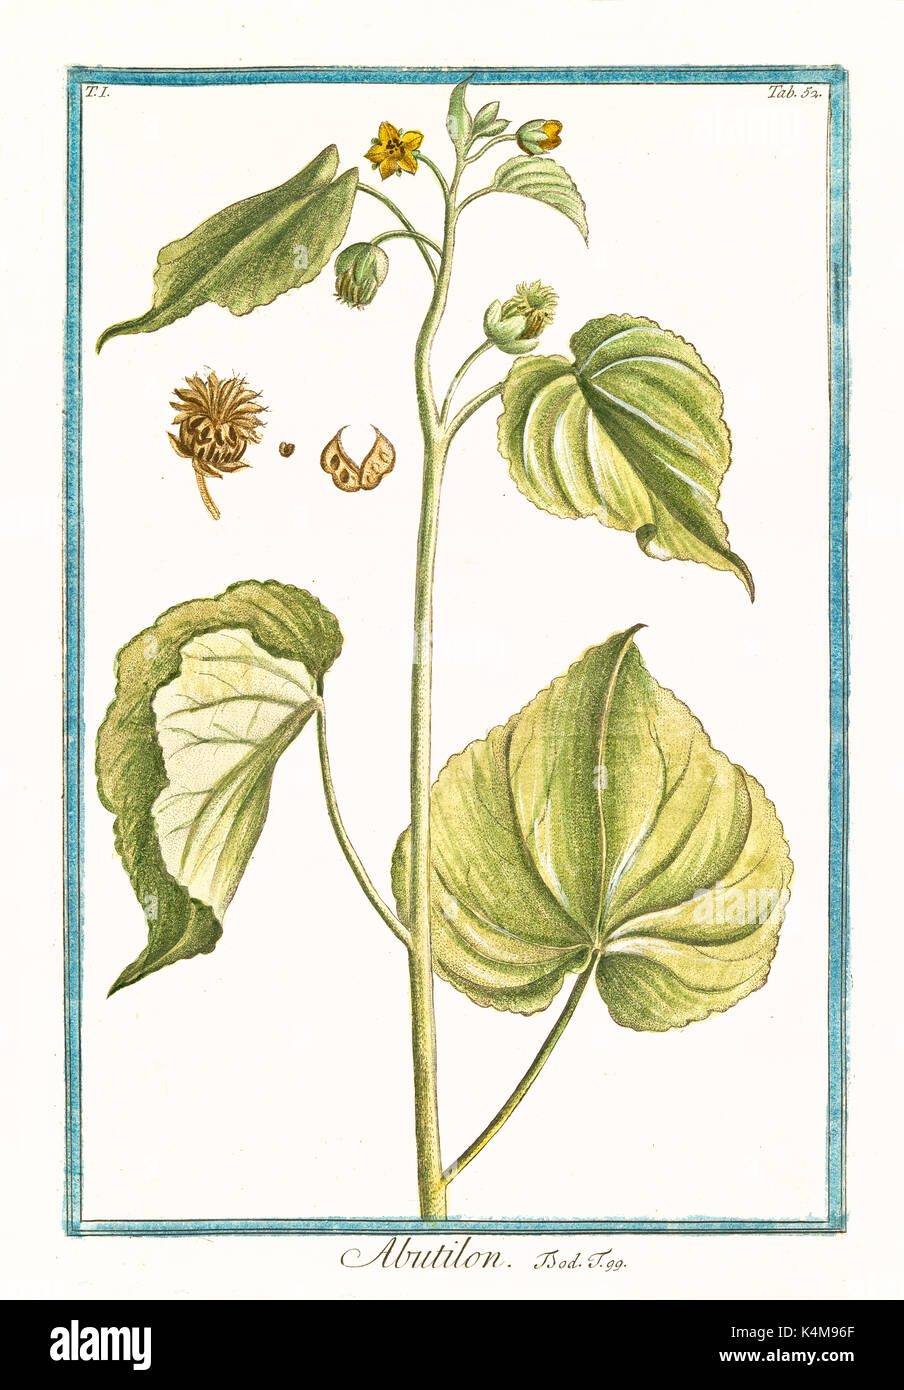 Old illustration of Abutilum. By G. Bonelli on Hortus Romanus, publ. N. Martelli, Rome, 1772 – 93 - Stock Image